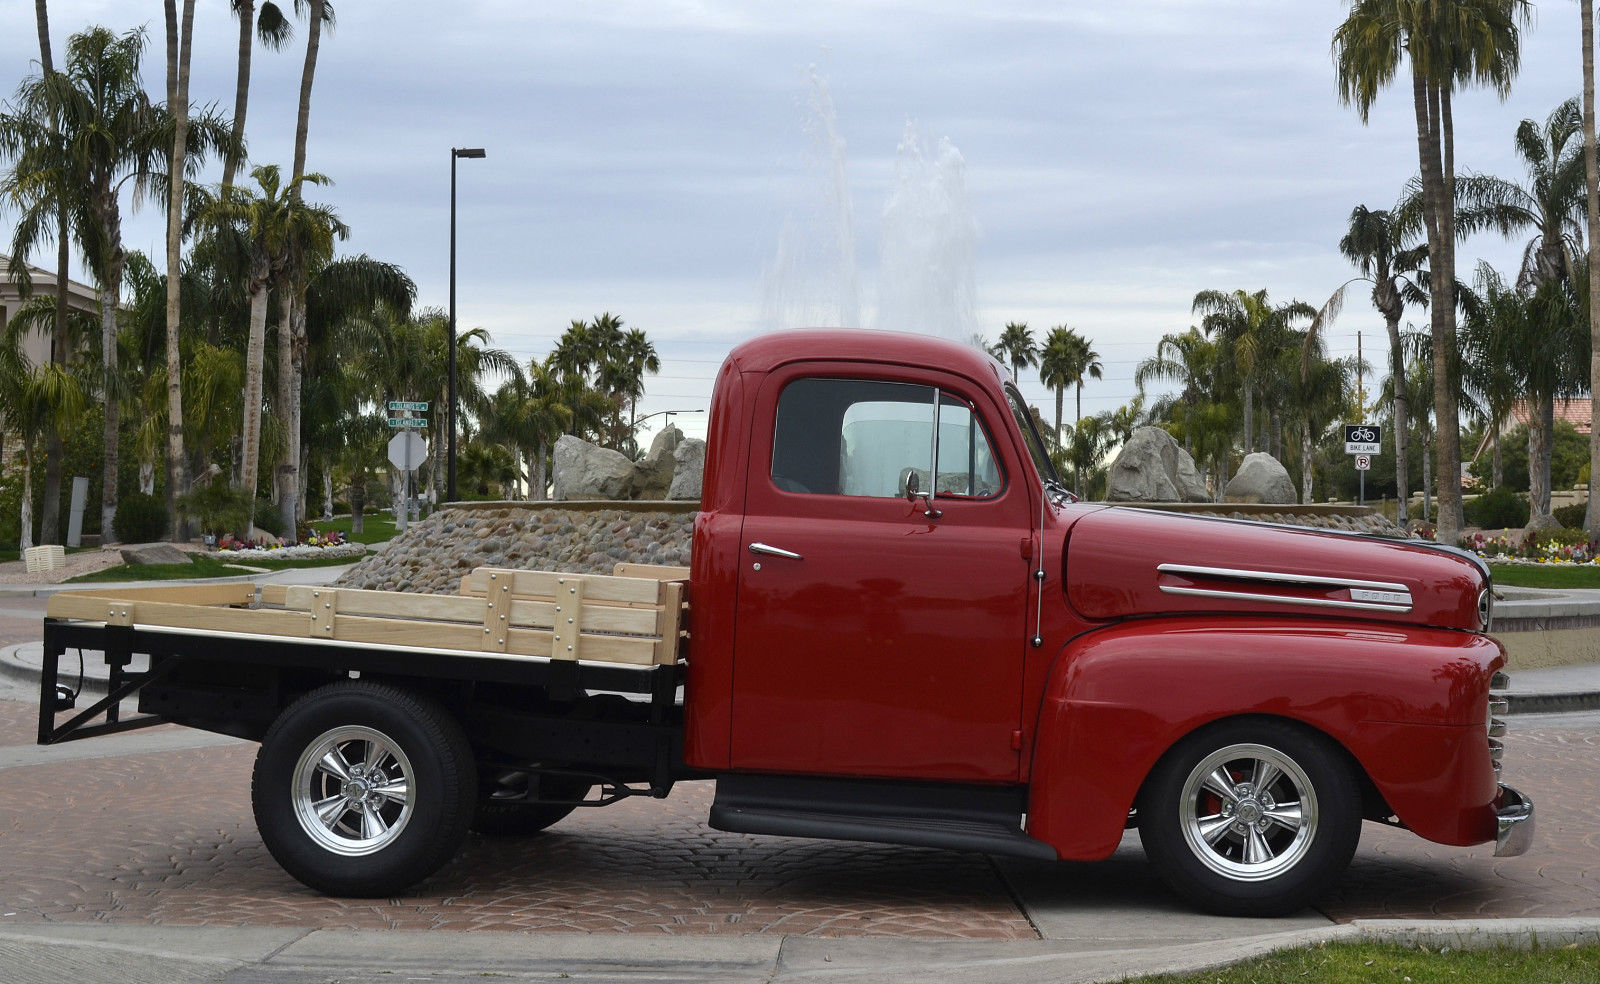 1948 Mercury Pickup Truck Html Drone Camera 1955 Ford F100 Heater With 1184228 Bed Sale On Grille Guard Yksfejqi3grublzt